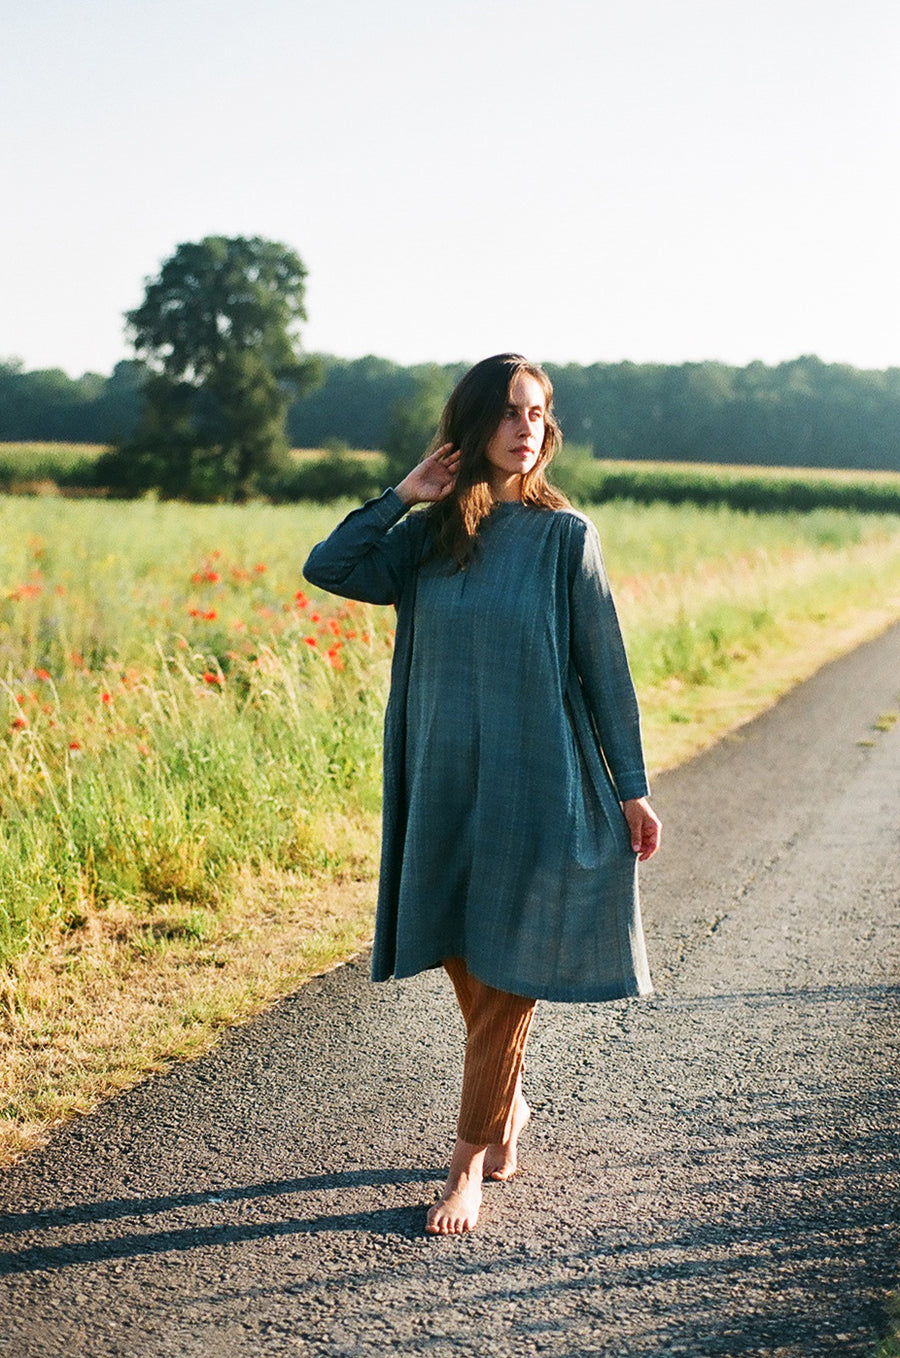 Indigo organic cotton dress with pale yellow accents - onlyethikal